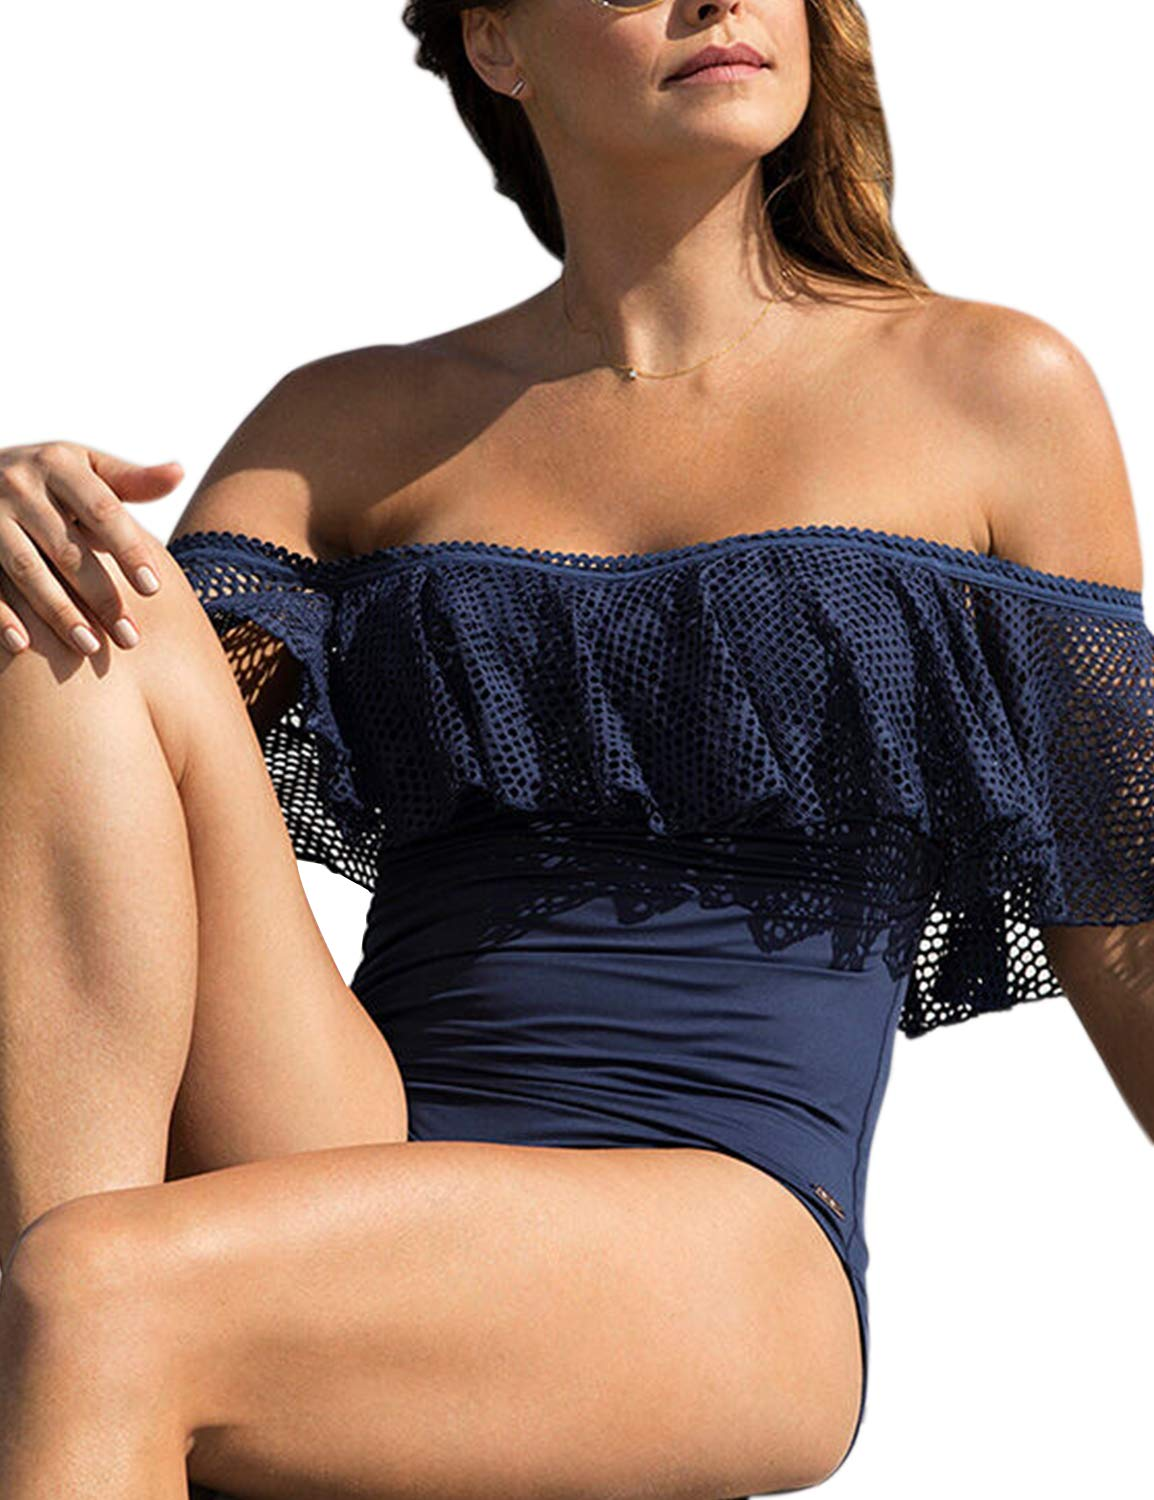 May Women's Ruffle One Piece Swimsuit Off Shoulder Swimwear Tummy Control Ruched High Cut Bathing Suit Blue